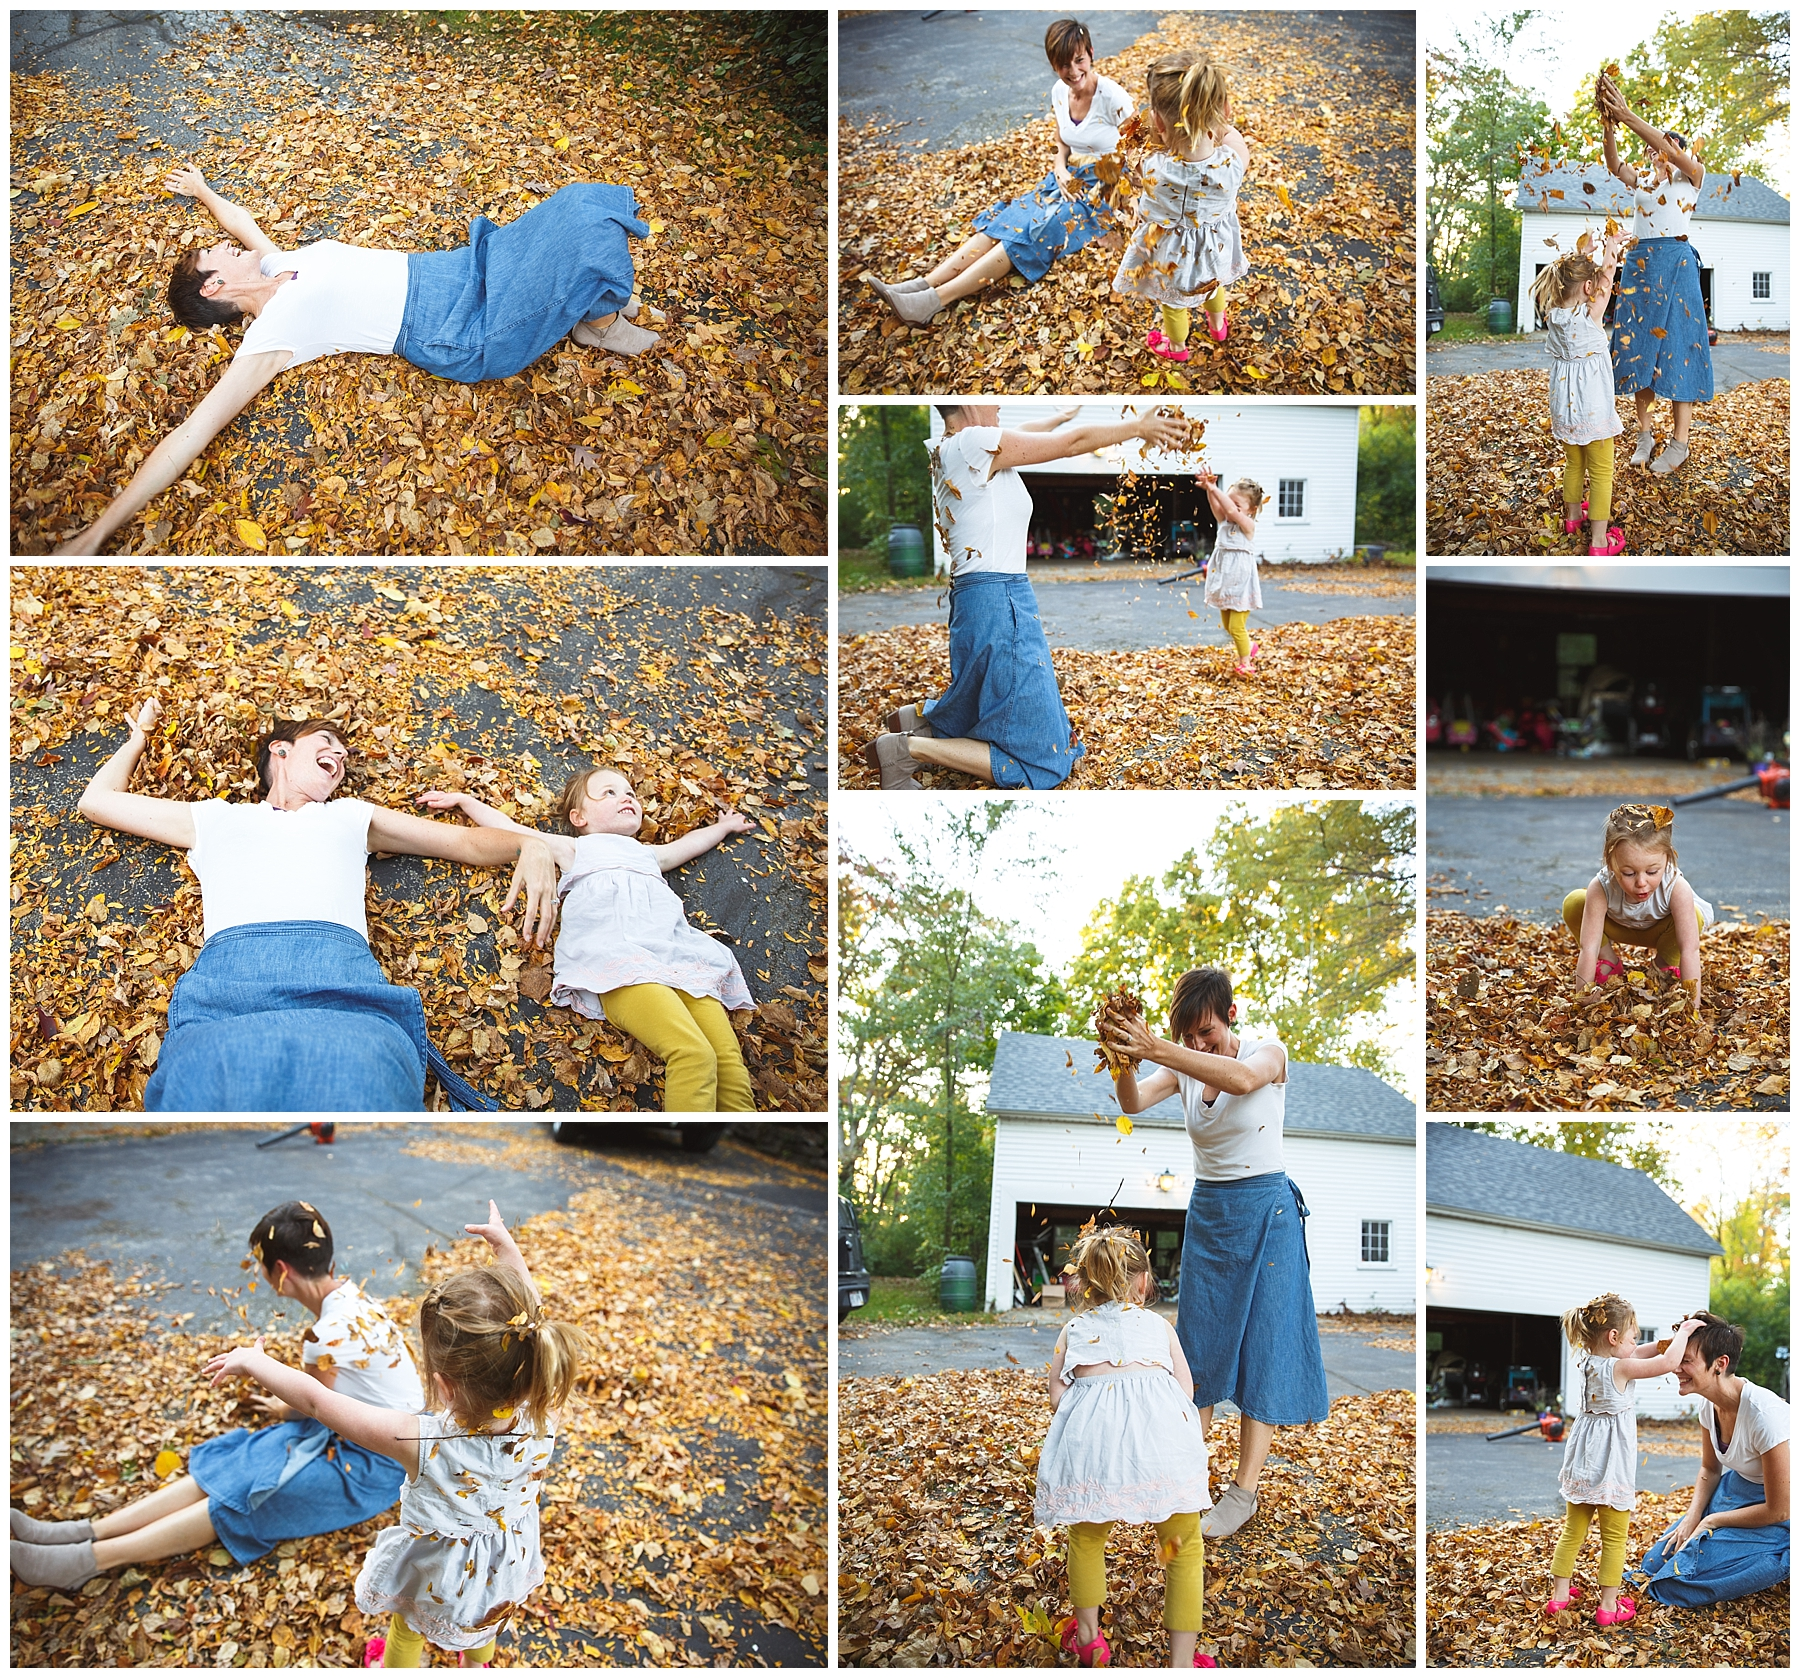 Fall clean up with the littles!